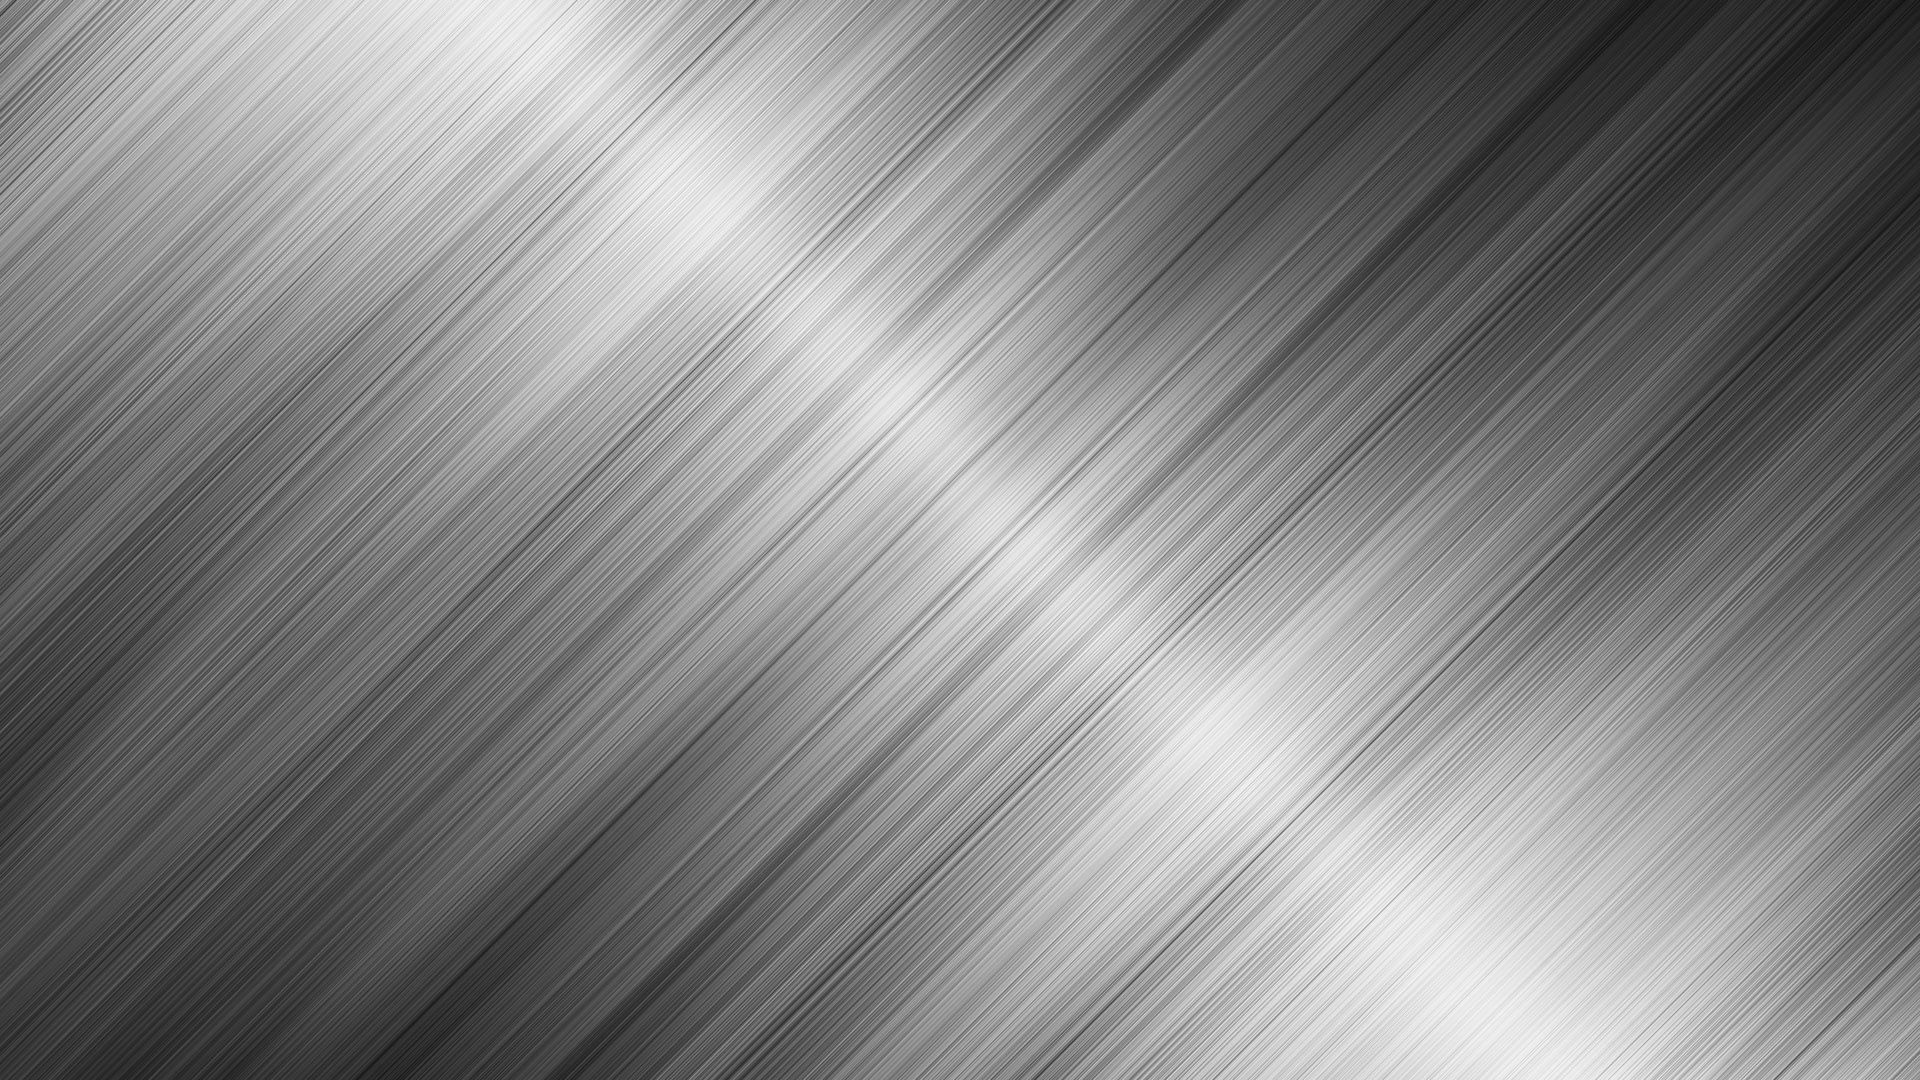 Stainless Steel PC Wallpaper HD